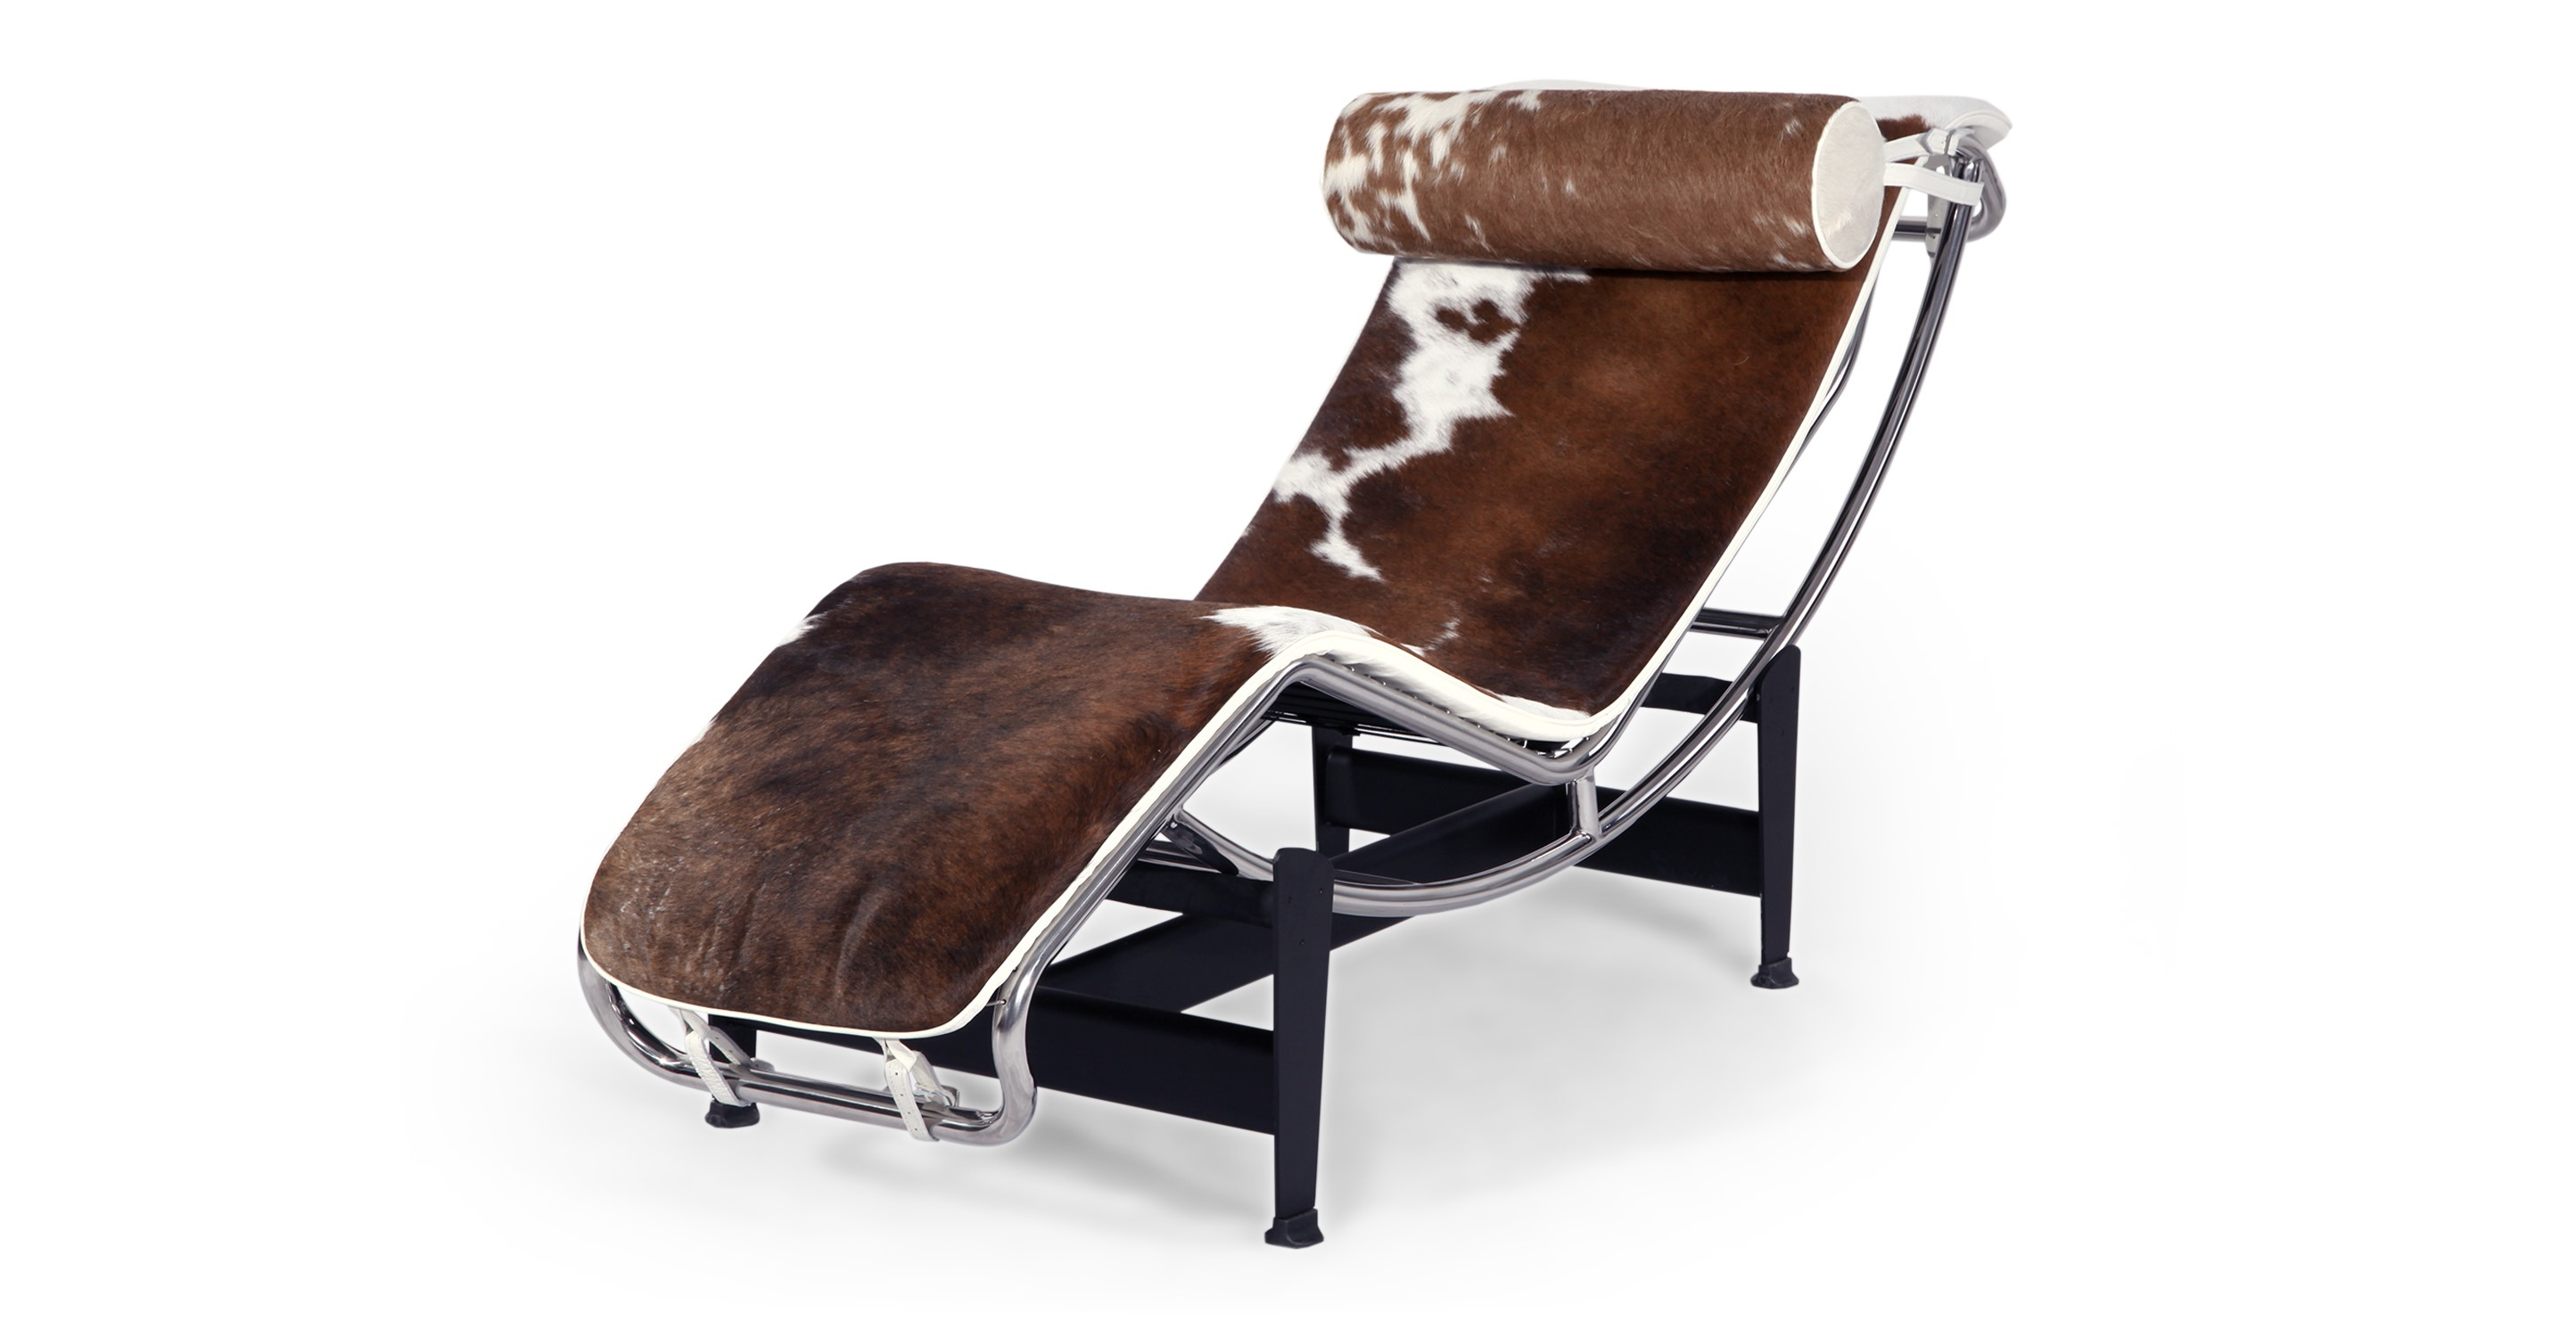 Gravity Chaise Lounge, Brown & White Cowhide